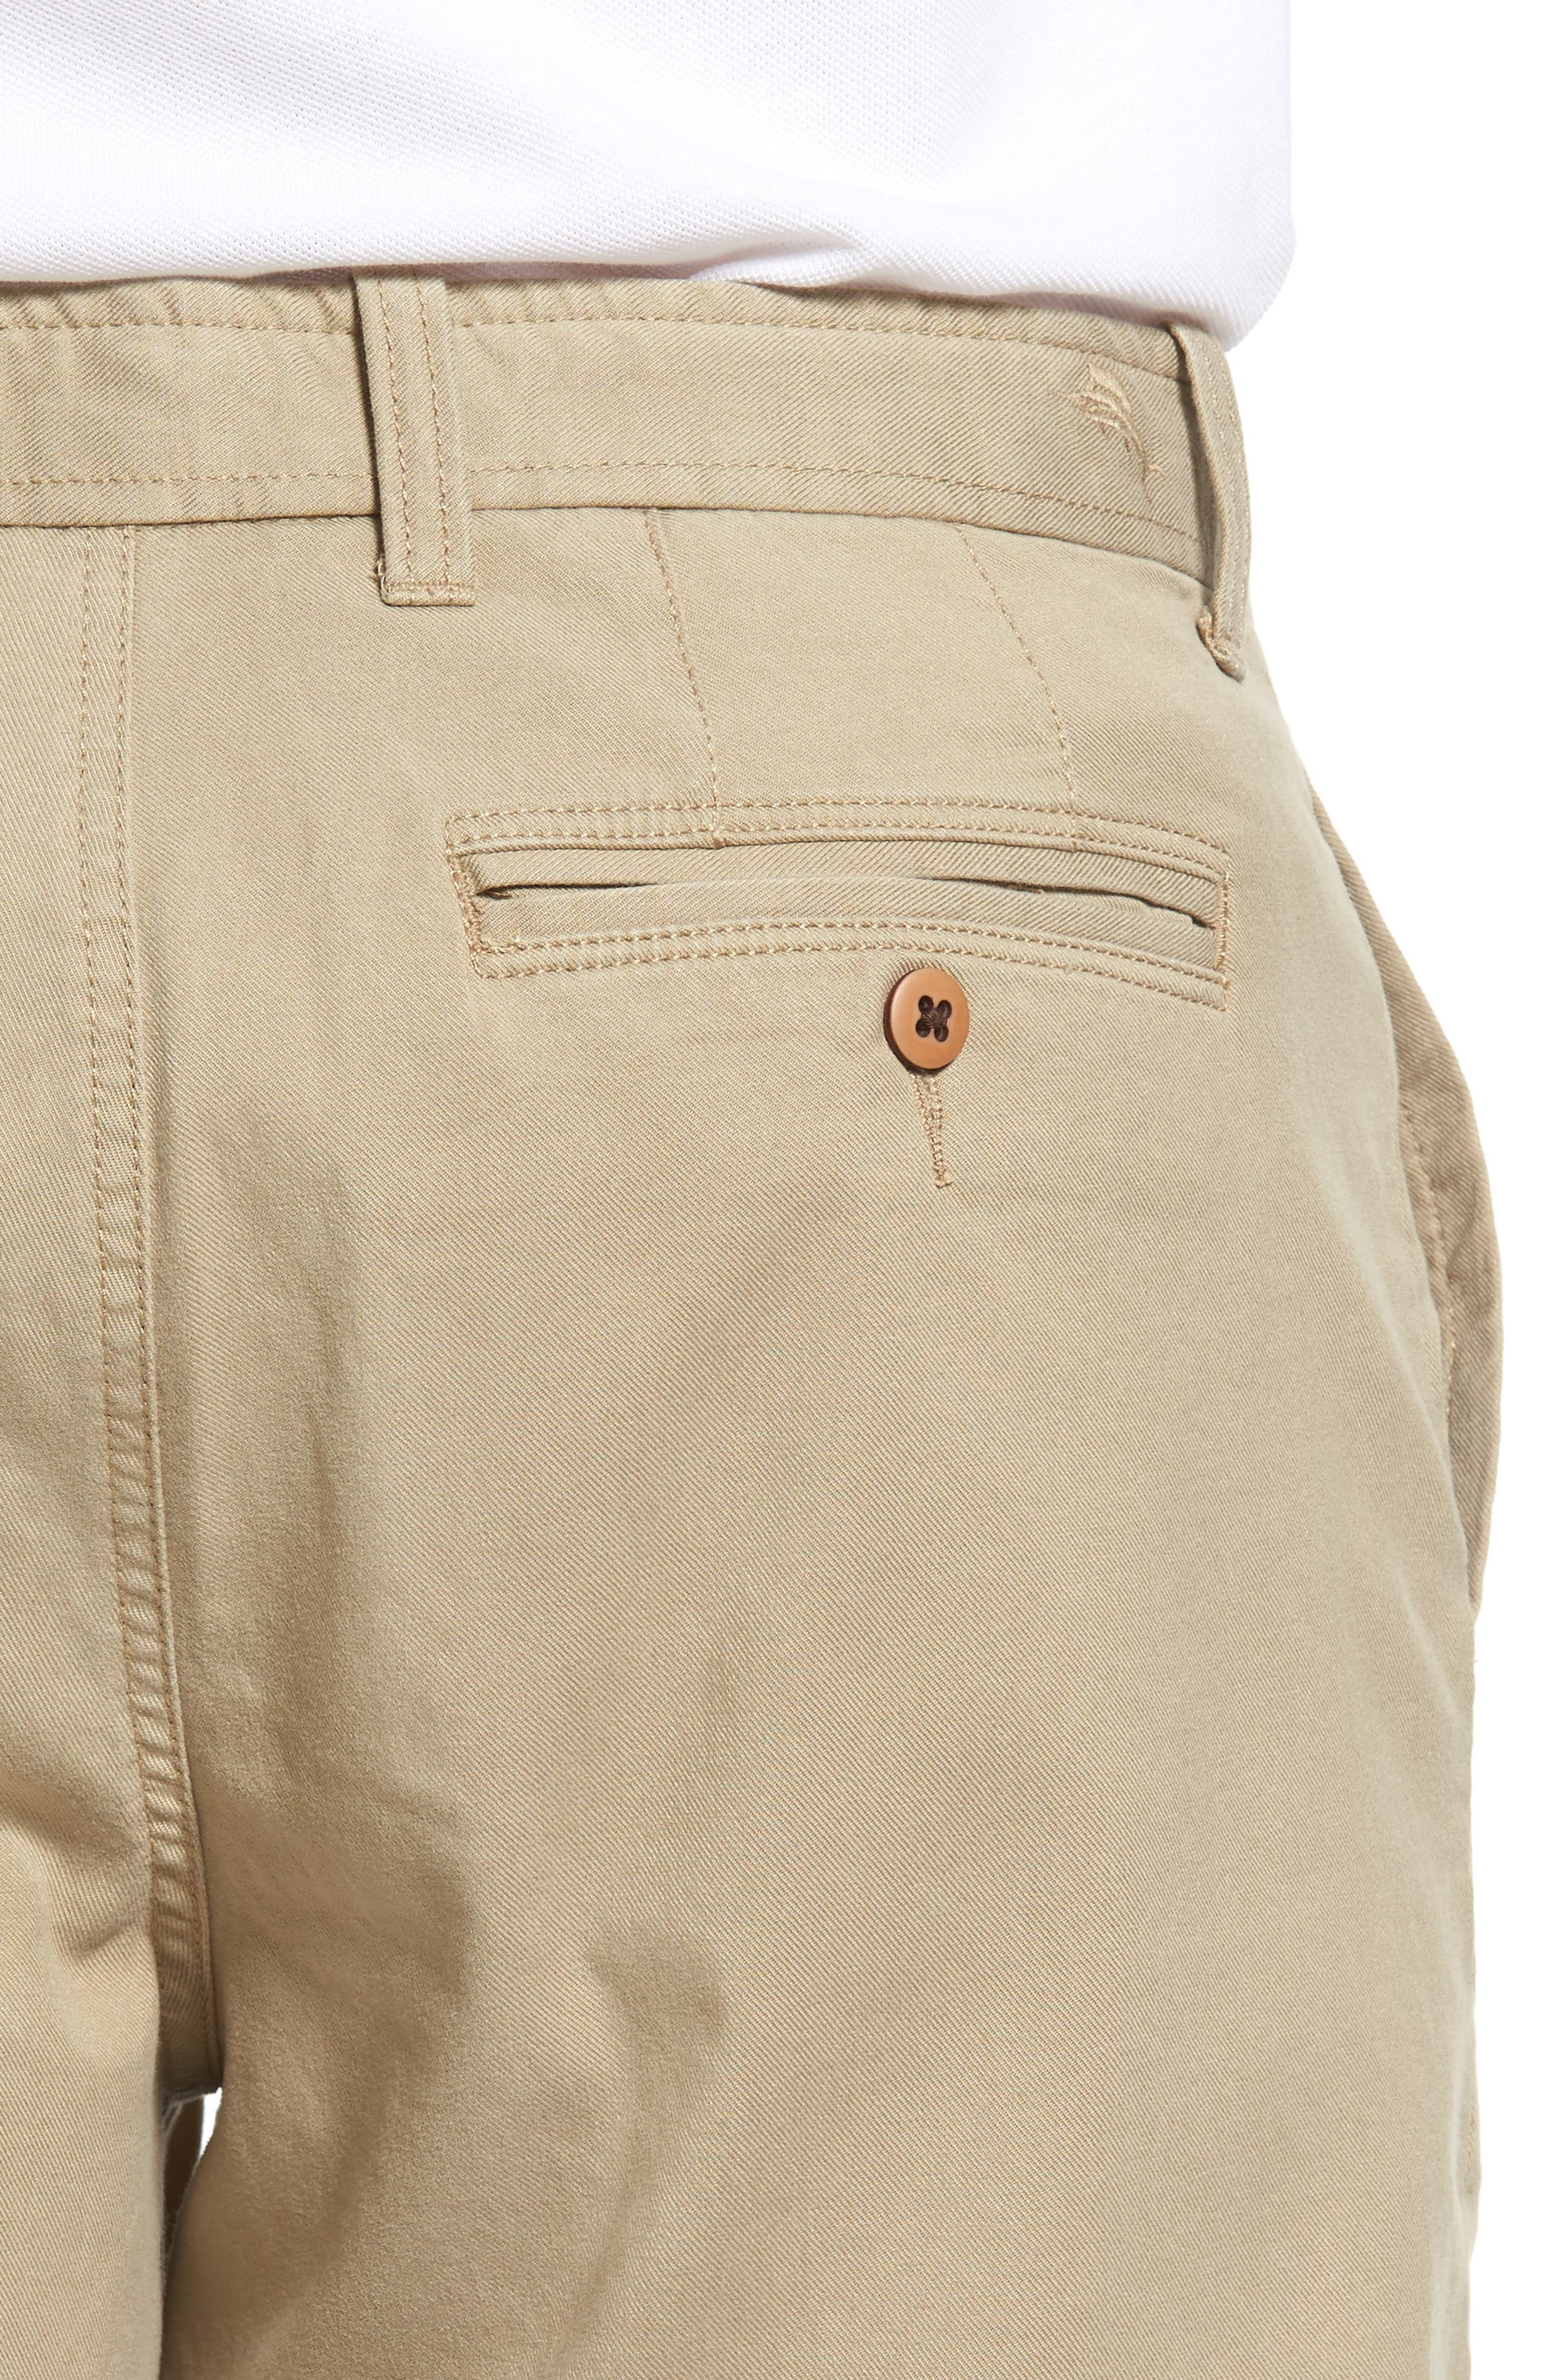 'Offshore' Stretch Twill Shorts,                             Alternate thumbnail 4, color,                             201